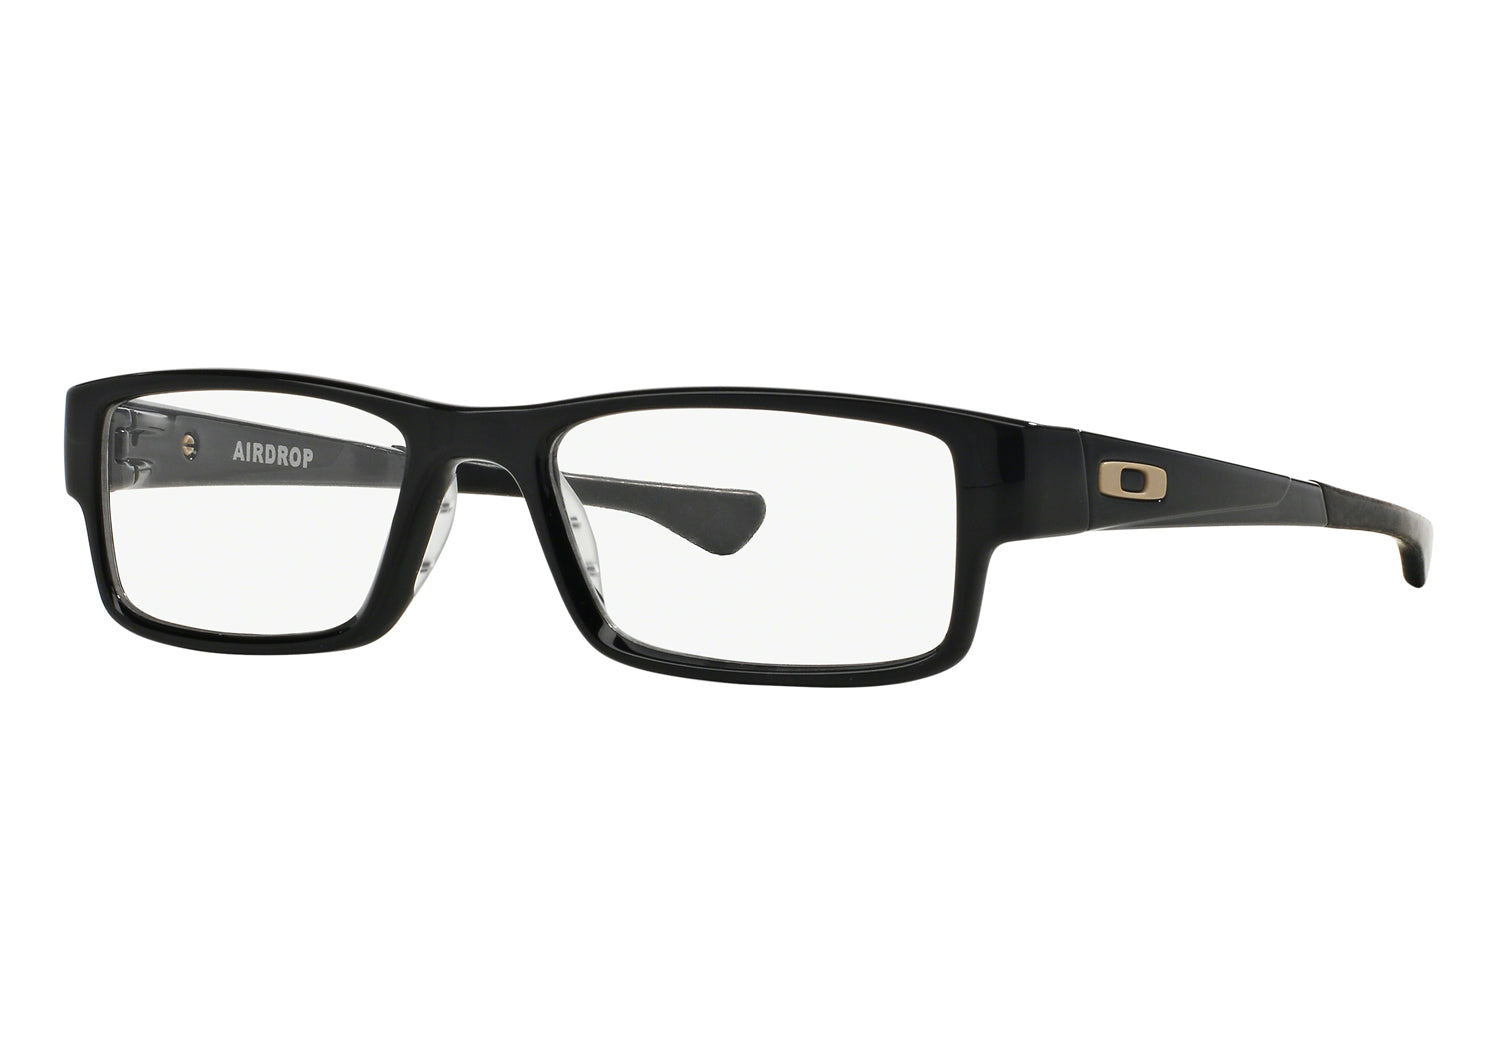 Oakley Airdrop 51 Prescription Glasses